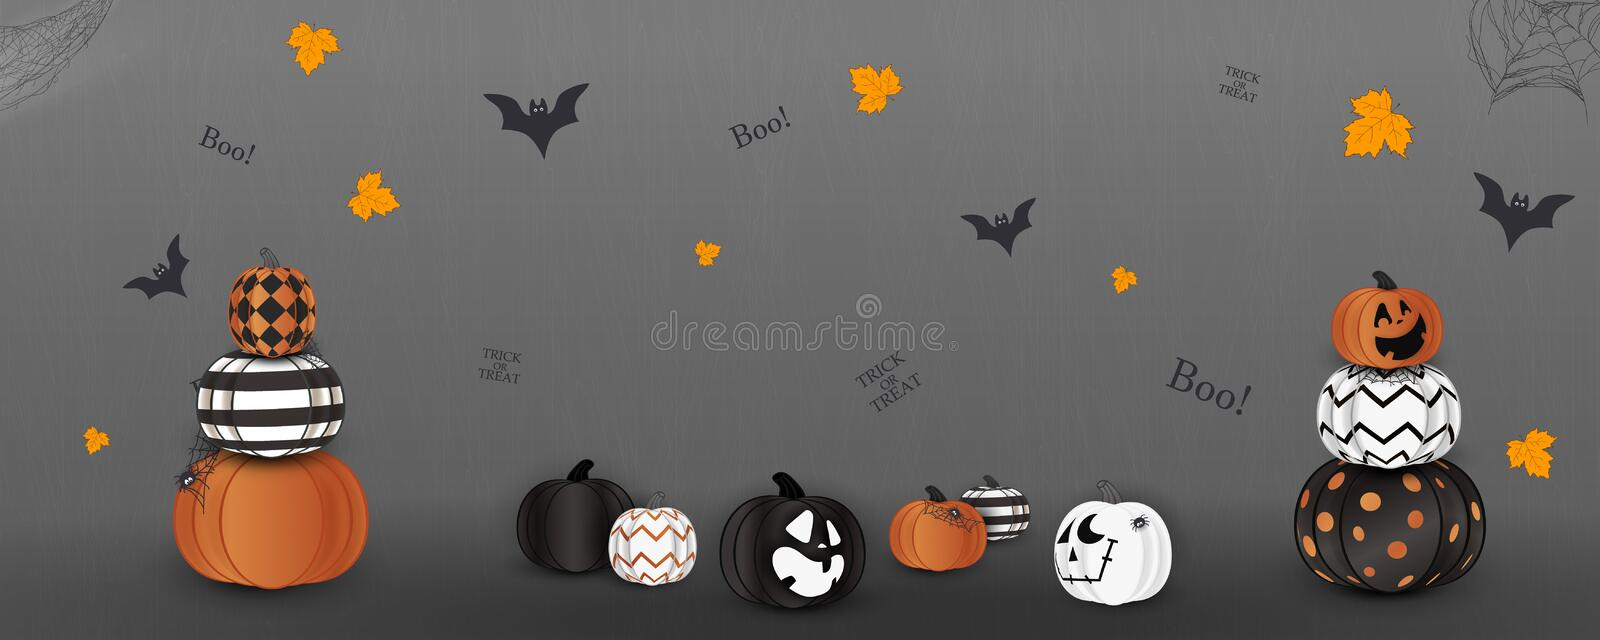 Happy Halloween. Trick or treat. Boo. Holiday concept with ghost orange, white, black halloween pumpkins funny faces stock illustration